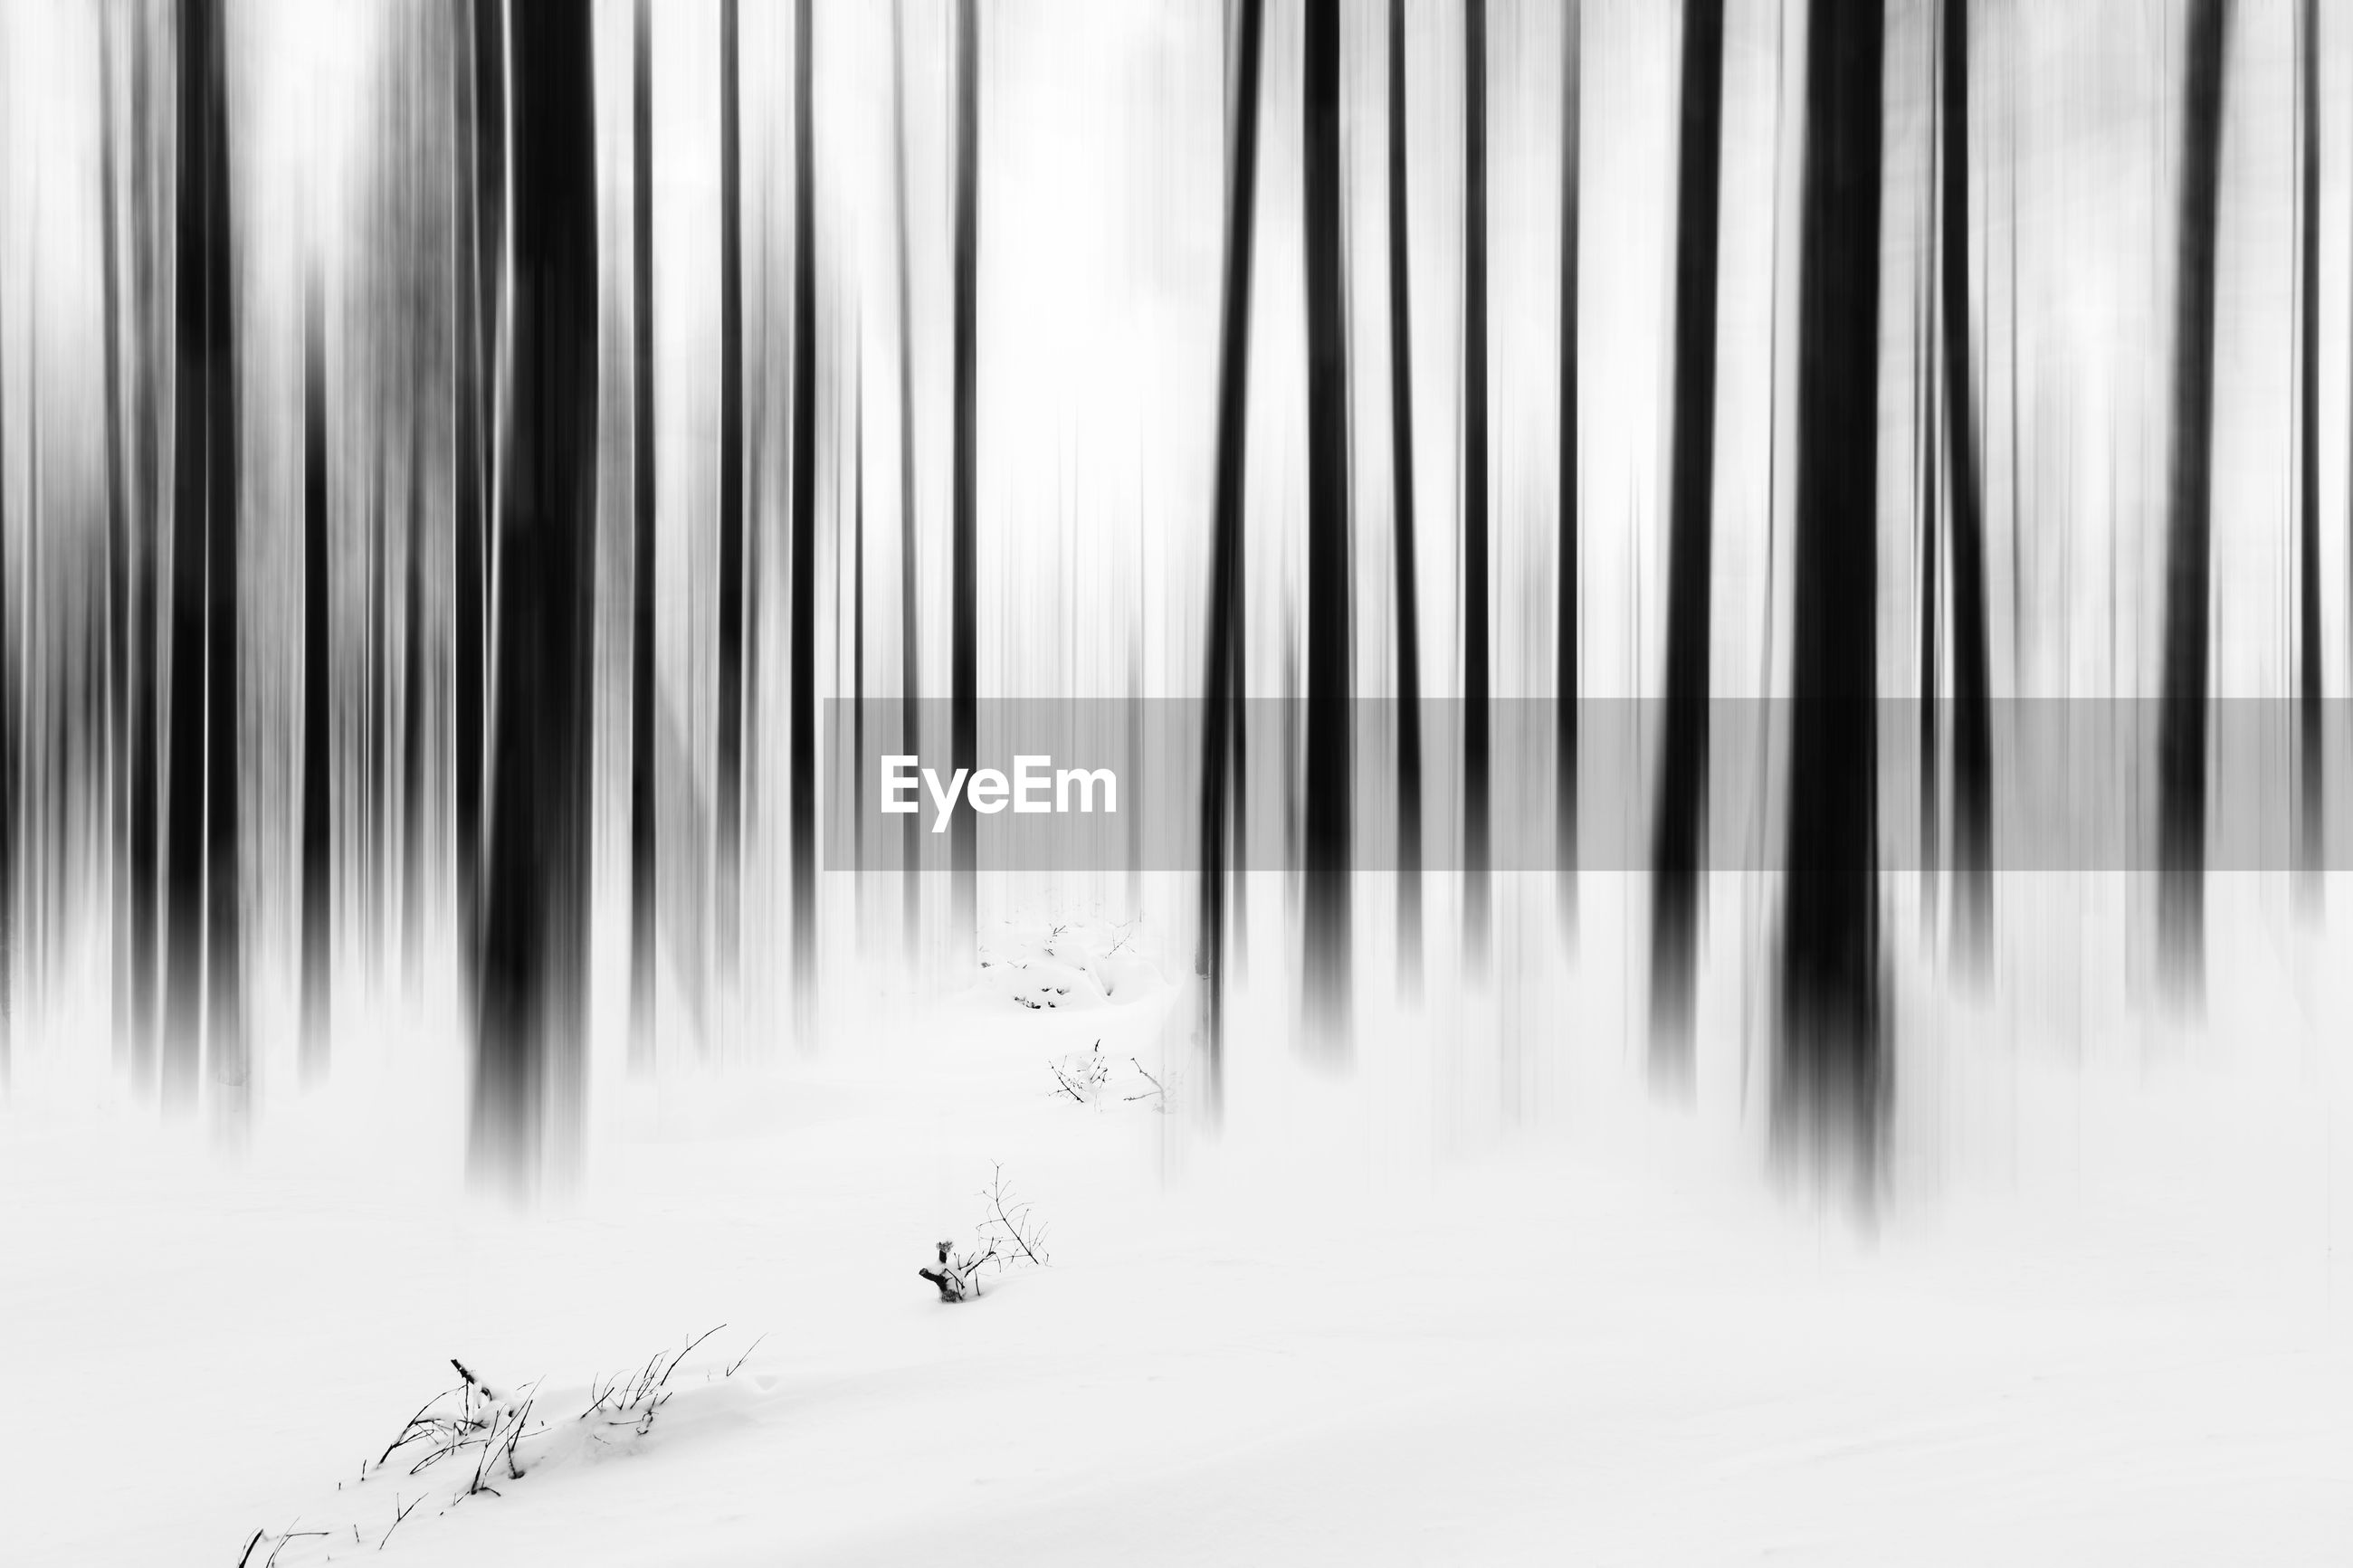 SCENIC VIEW OF SNOW COVERED LAND AGAINST TREES